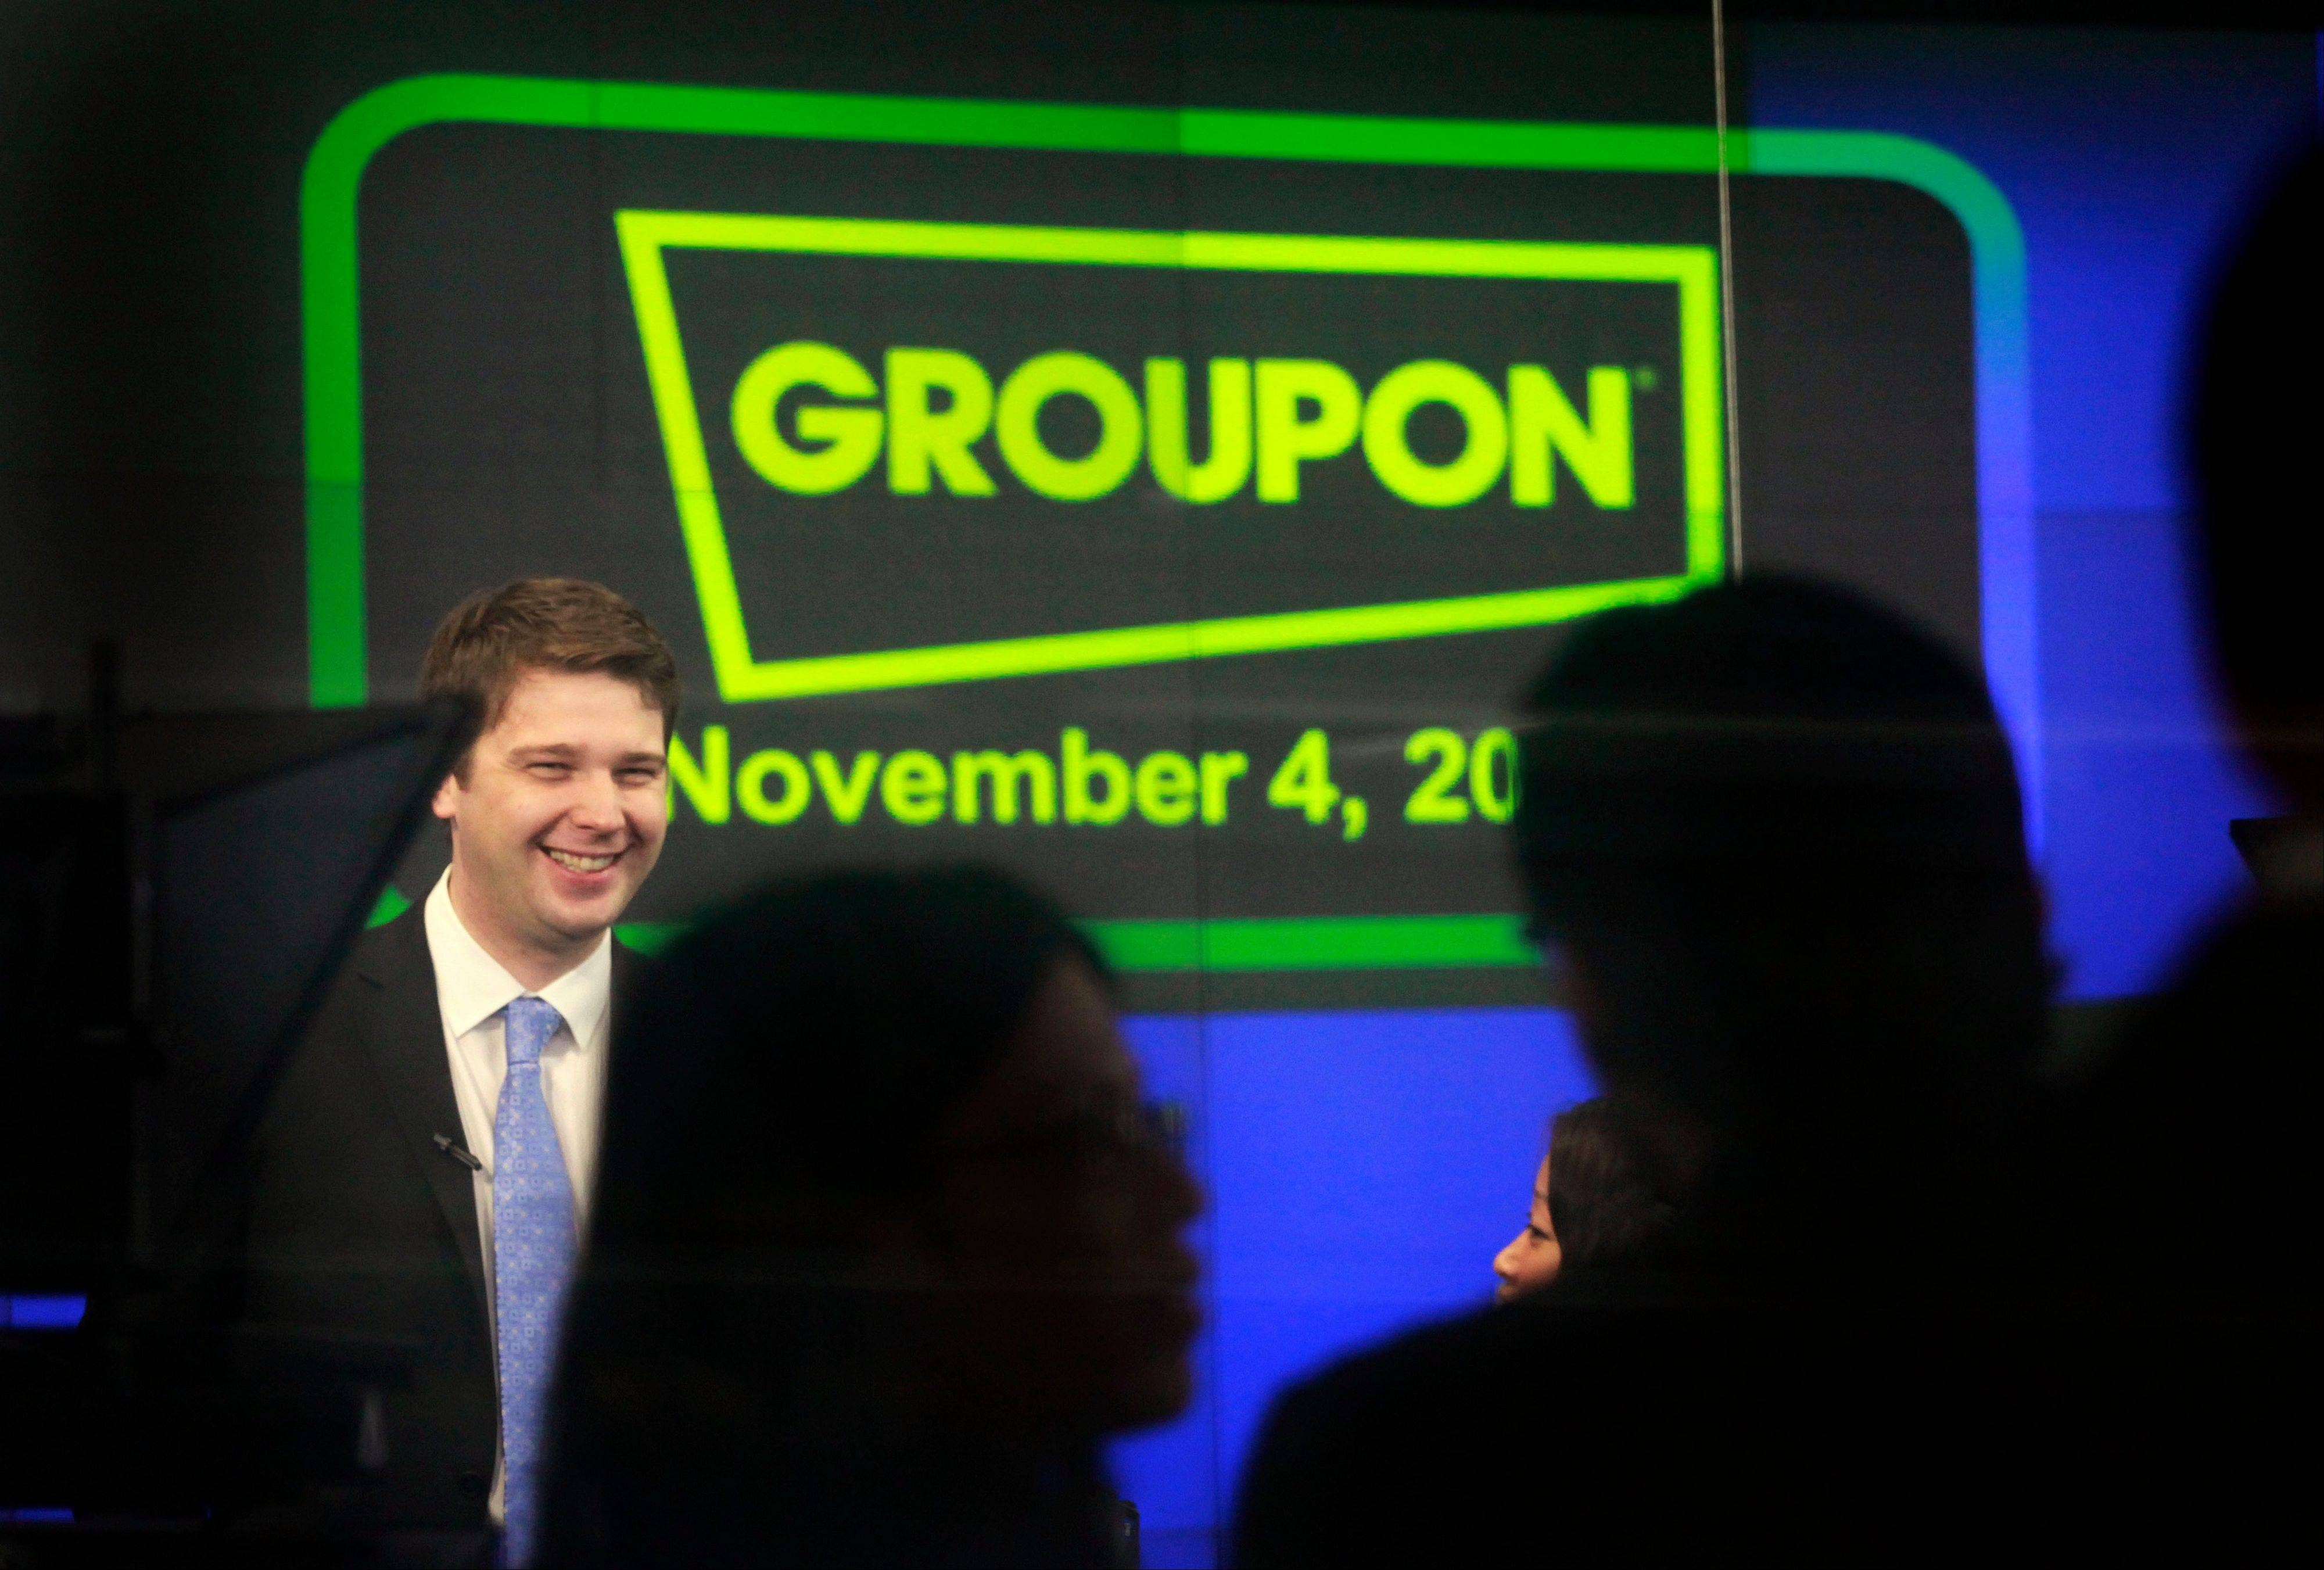 Associated Press/Nov. 4, 2011 Andrew Mason, founder and CEO of Groupon, attends his company�s IPO at Nasdaq, in New York. Former Groupon CEO Mason announced several new ventures Friday, including indulging his inner rock star with an album of �motivational business music.